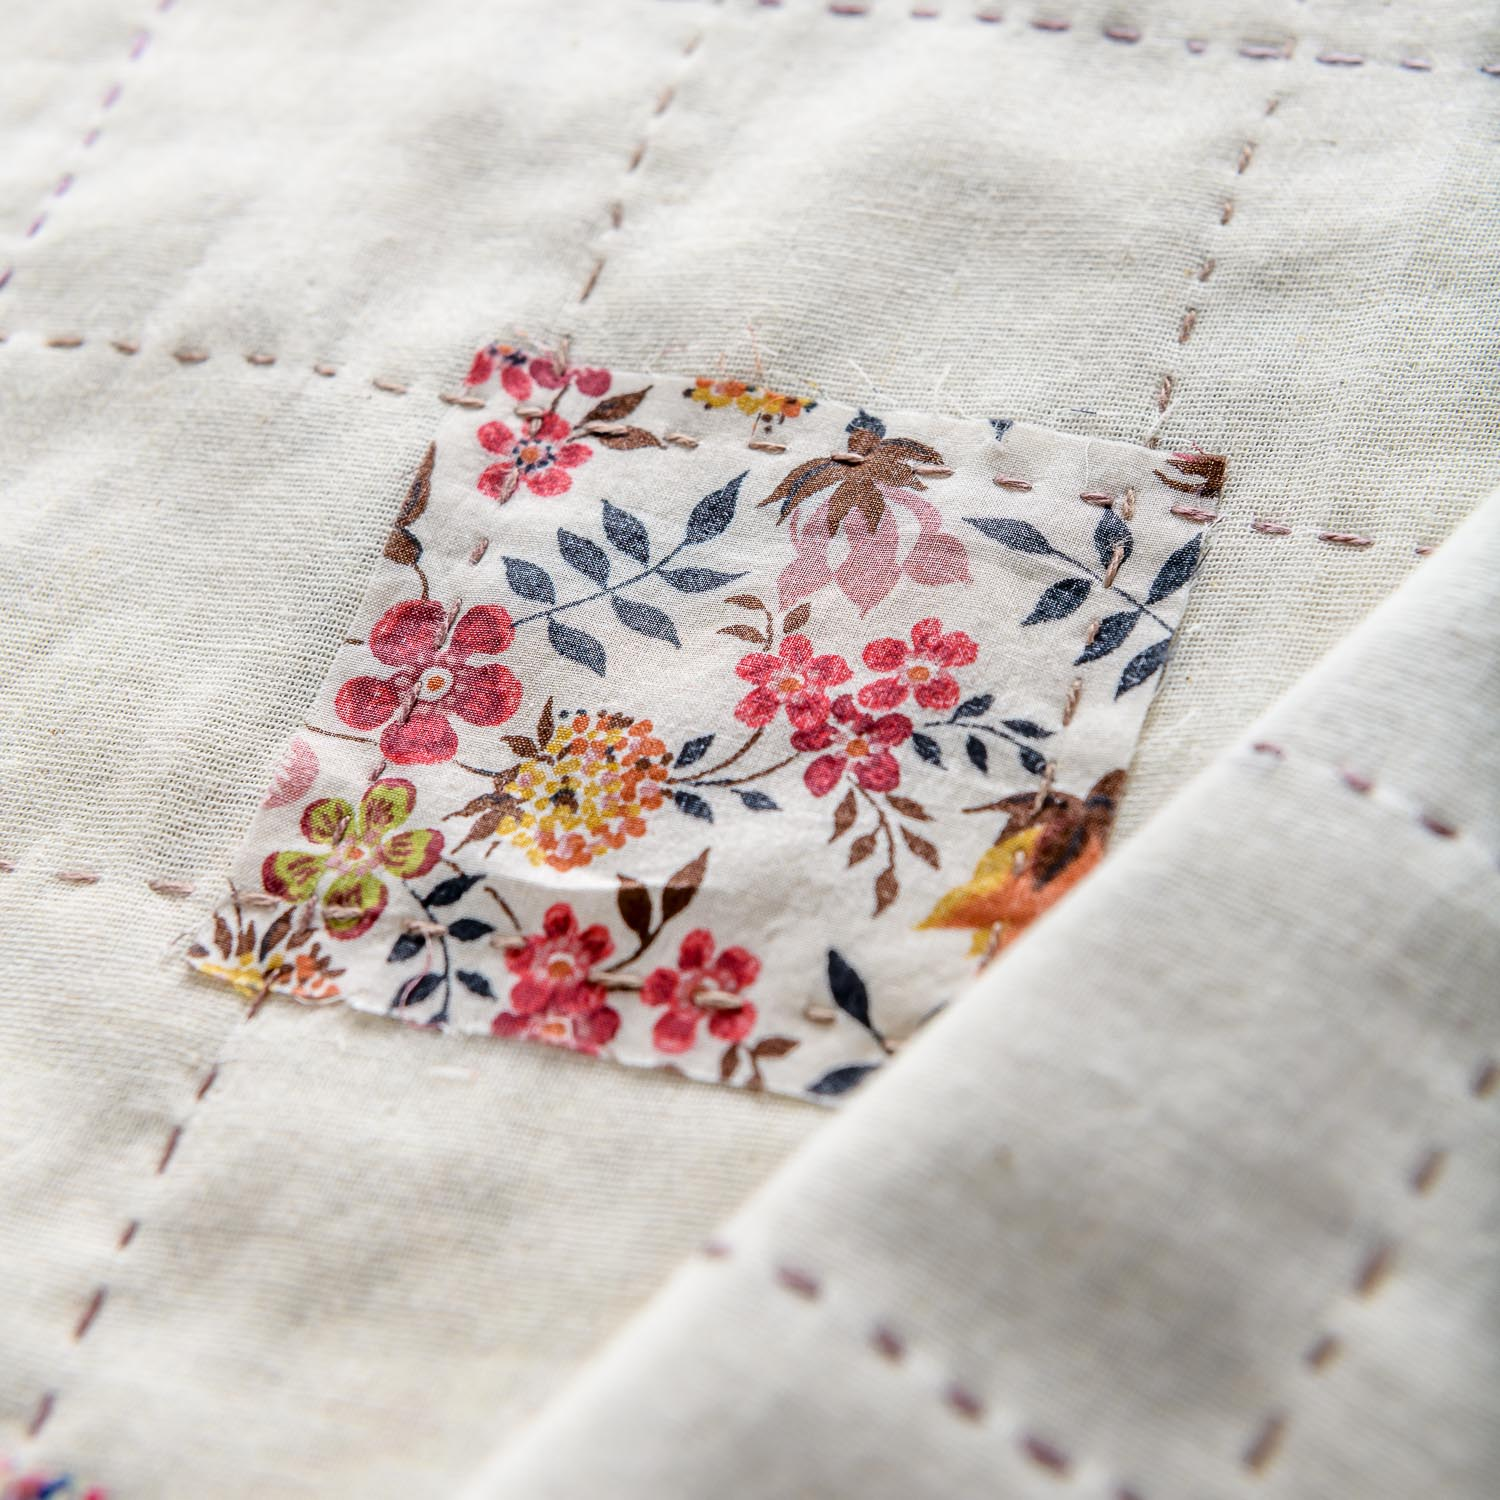 Quilted Patchworks by Carolyn Forster for Fox Chapel 210826wc853940